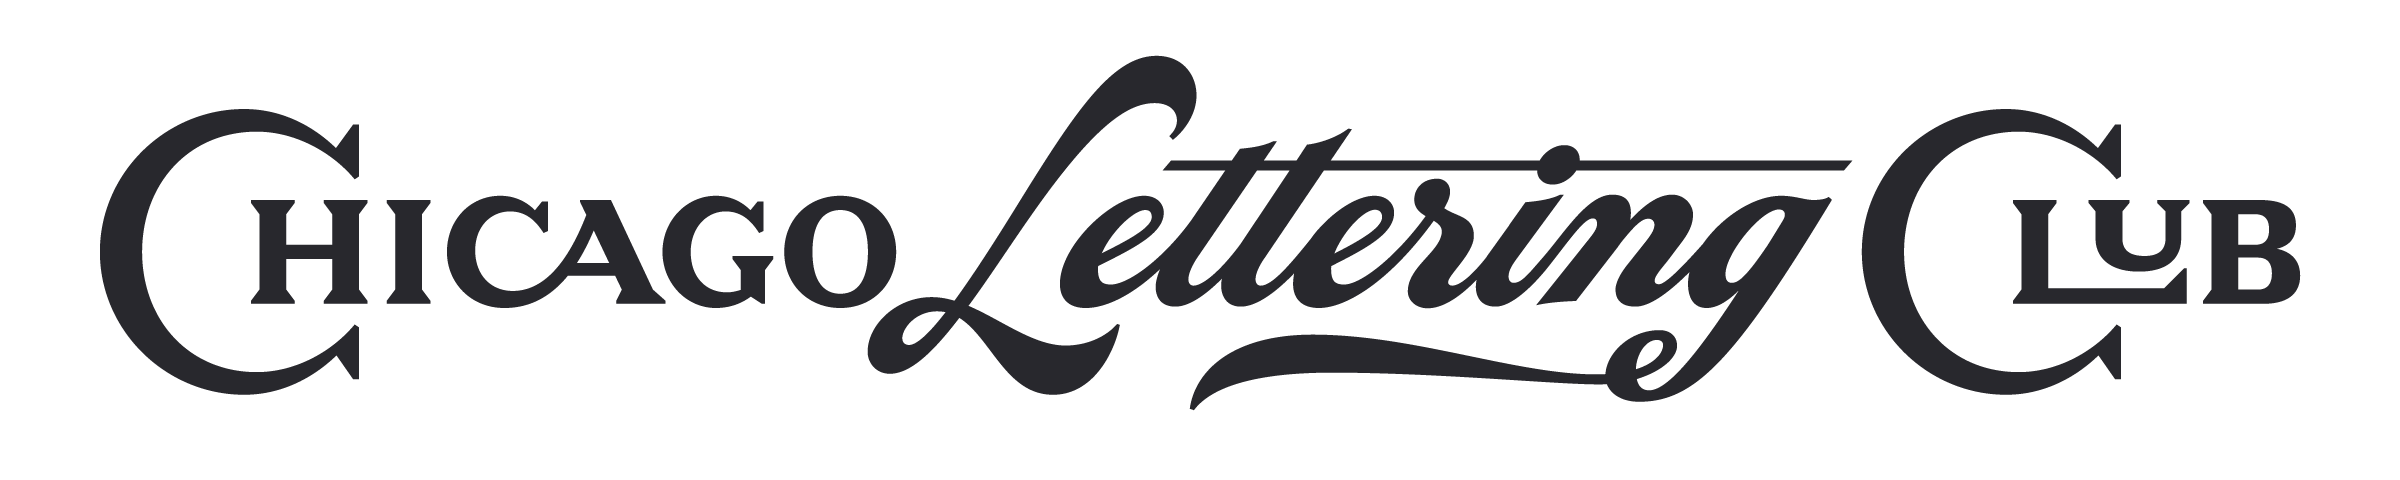 ChicagoLetteringClub.png